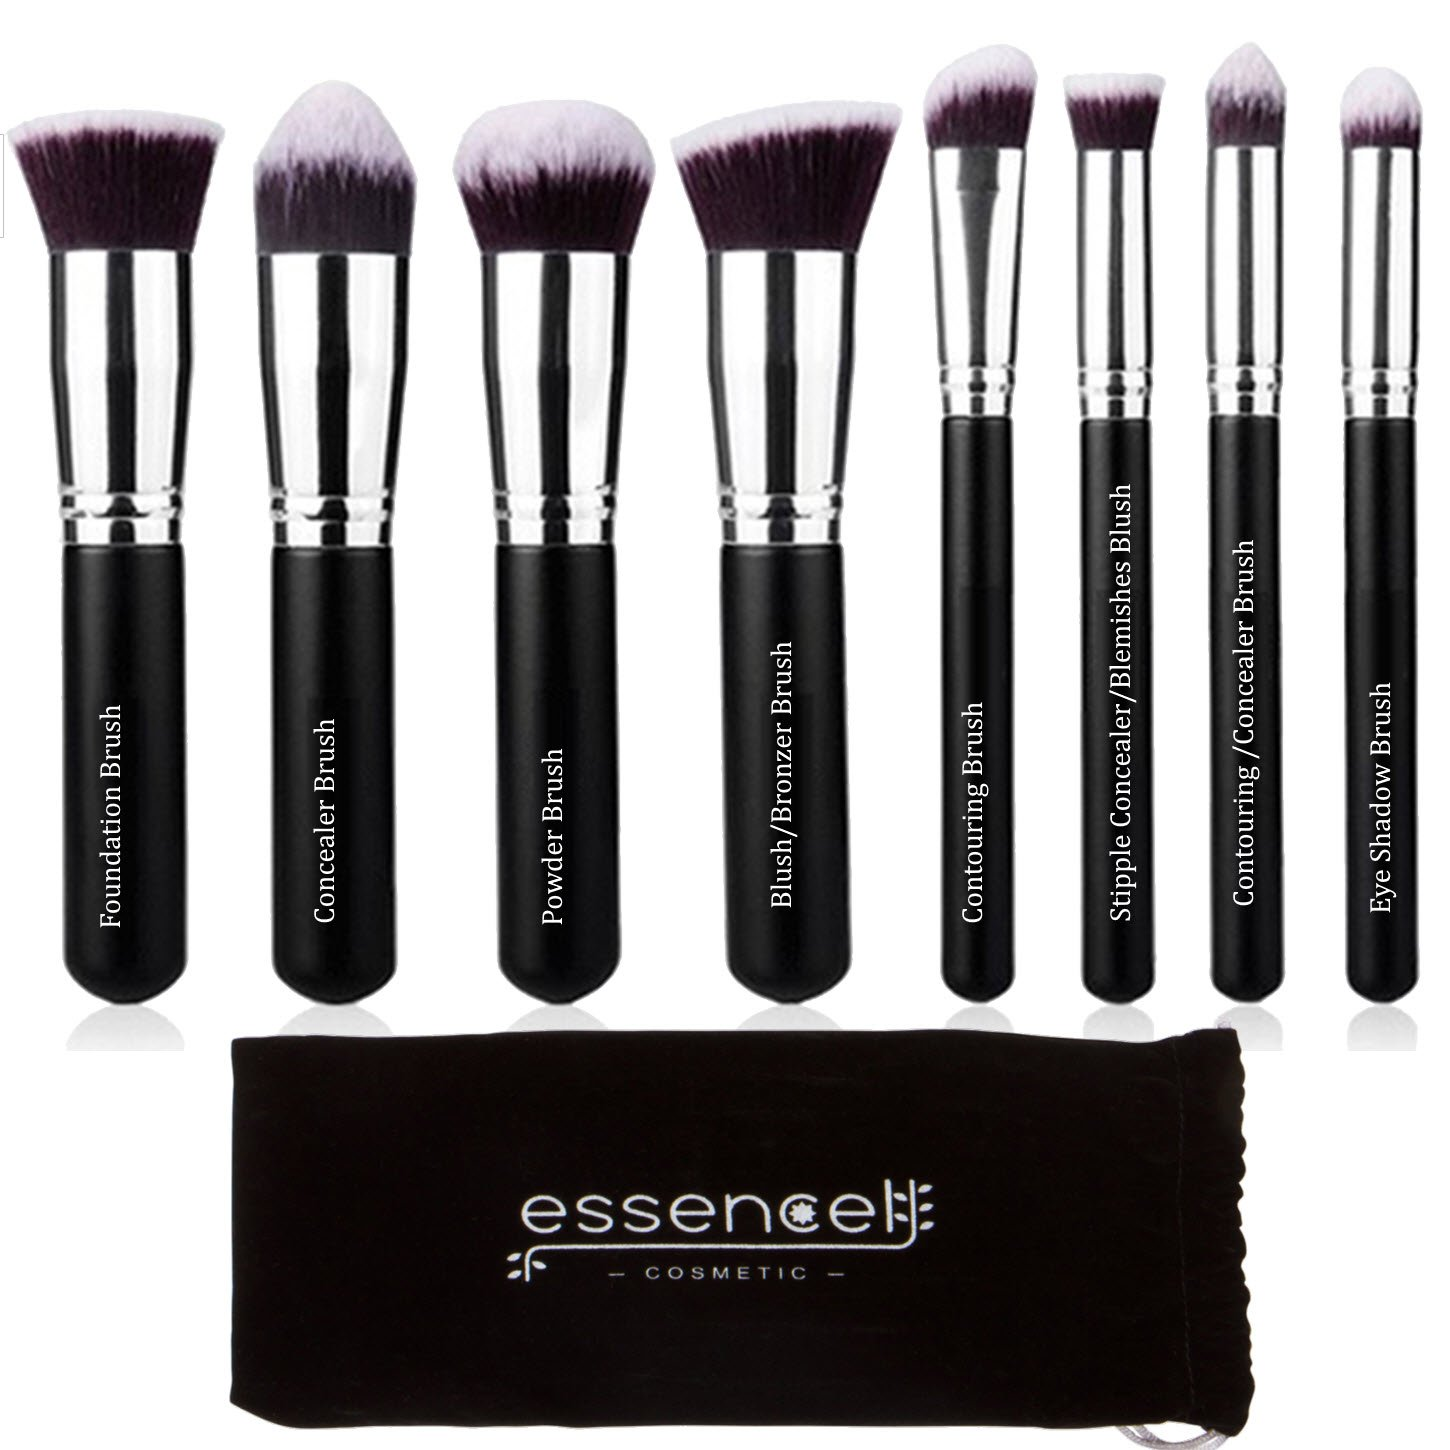 Essencell Makeup Brushes Premium Synthetic Kabuki Cosmetic Makeup Brush Set - Foundation,Powder, Blending Blush Bronzer, Concealer Contour, Eye Shadow Brush Kit (8PCs, Black Sliver)